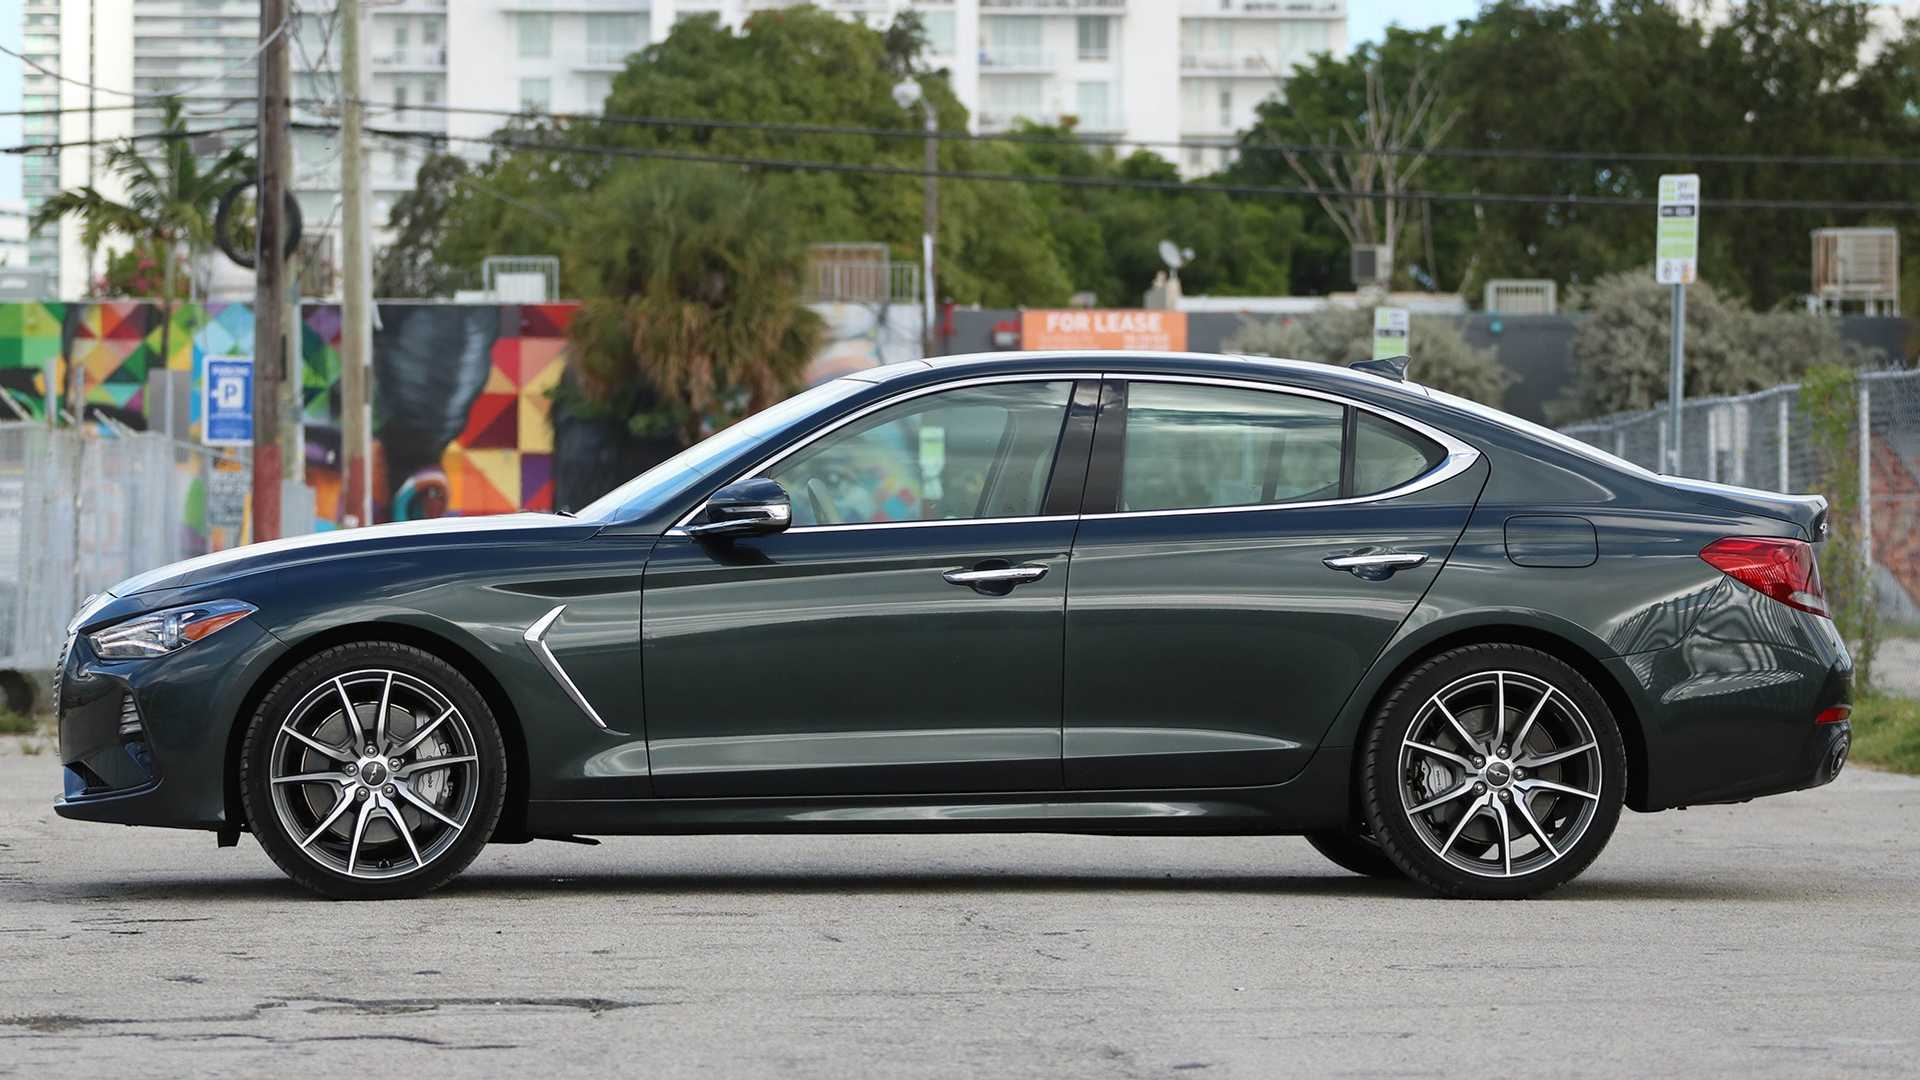 2019 Genesis G70 3 3t Design Edition Review Land Of Hopes And Dreams